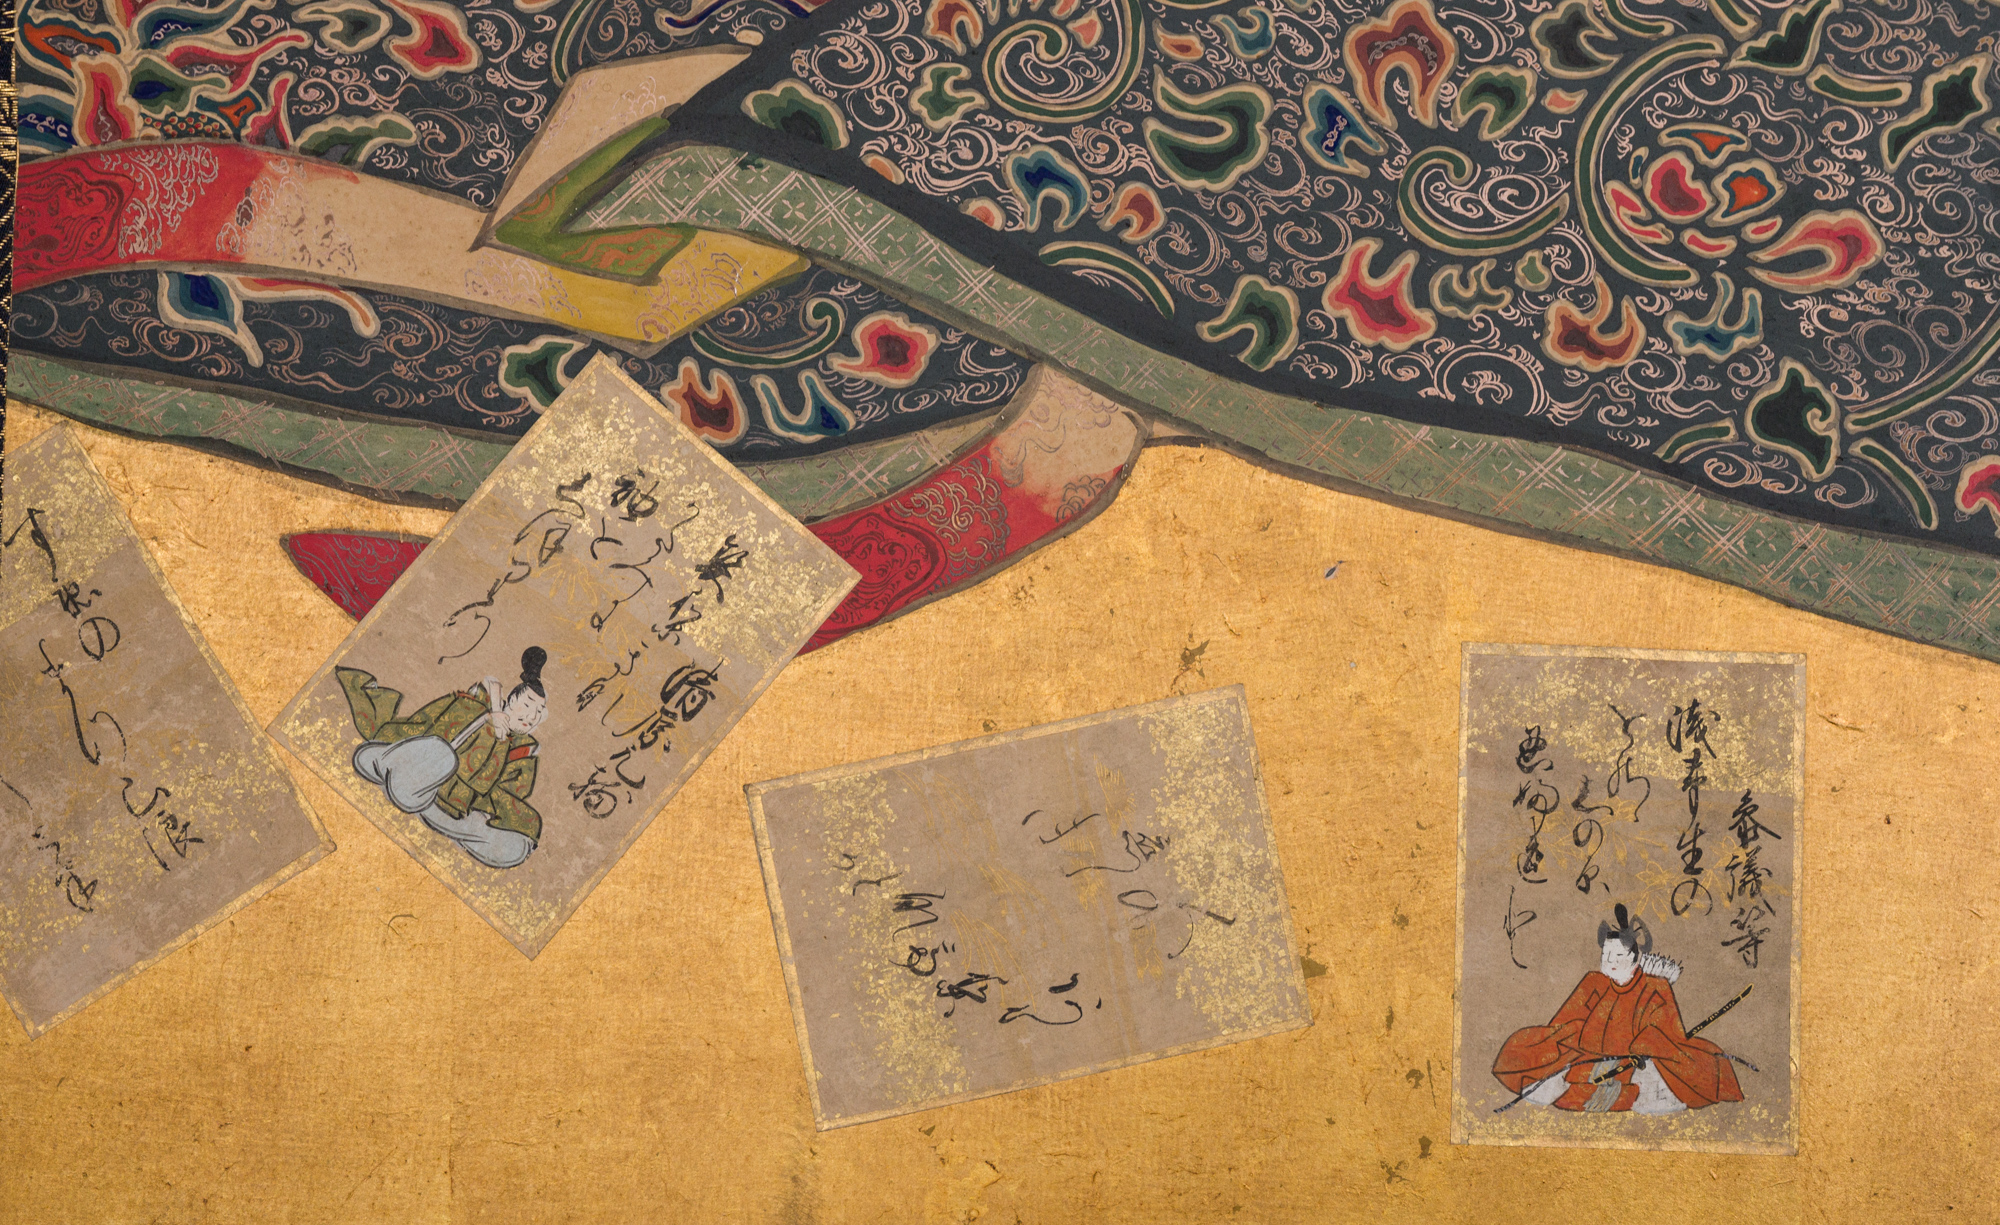 Japanese Two Panel Screen: Painting of Draped Cloth Curtains on a Display Rack with Scattered Playing Cards